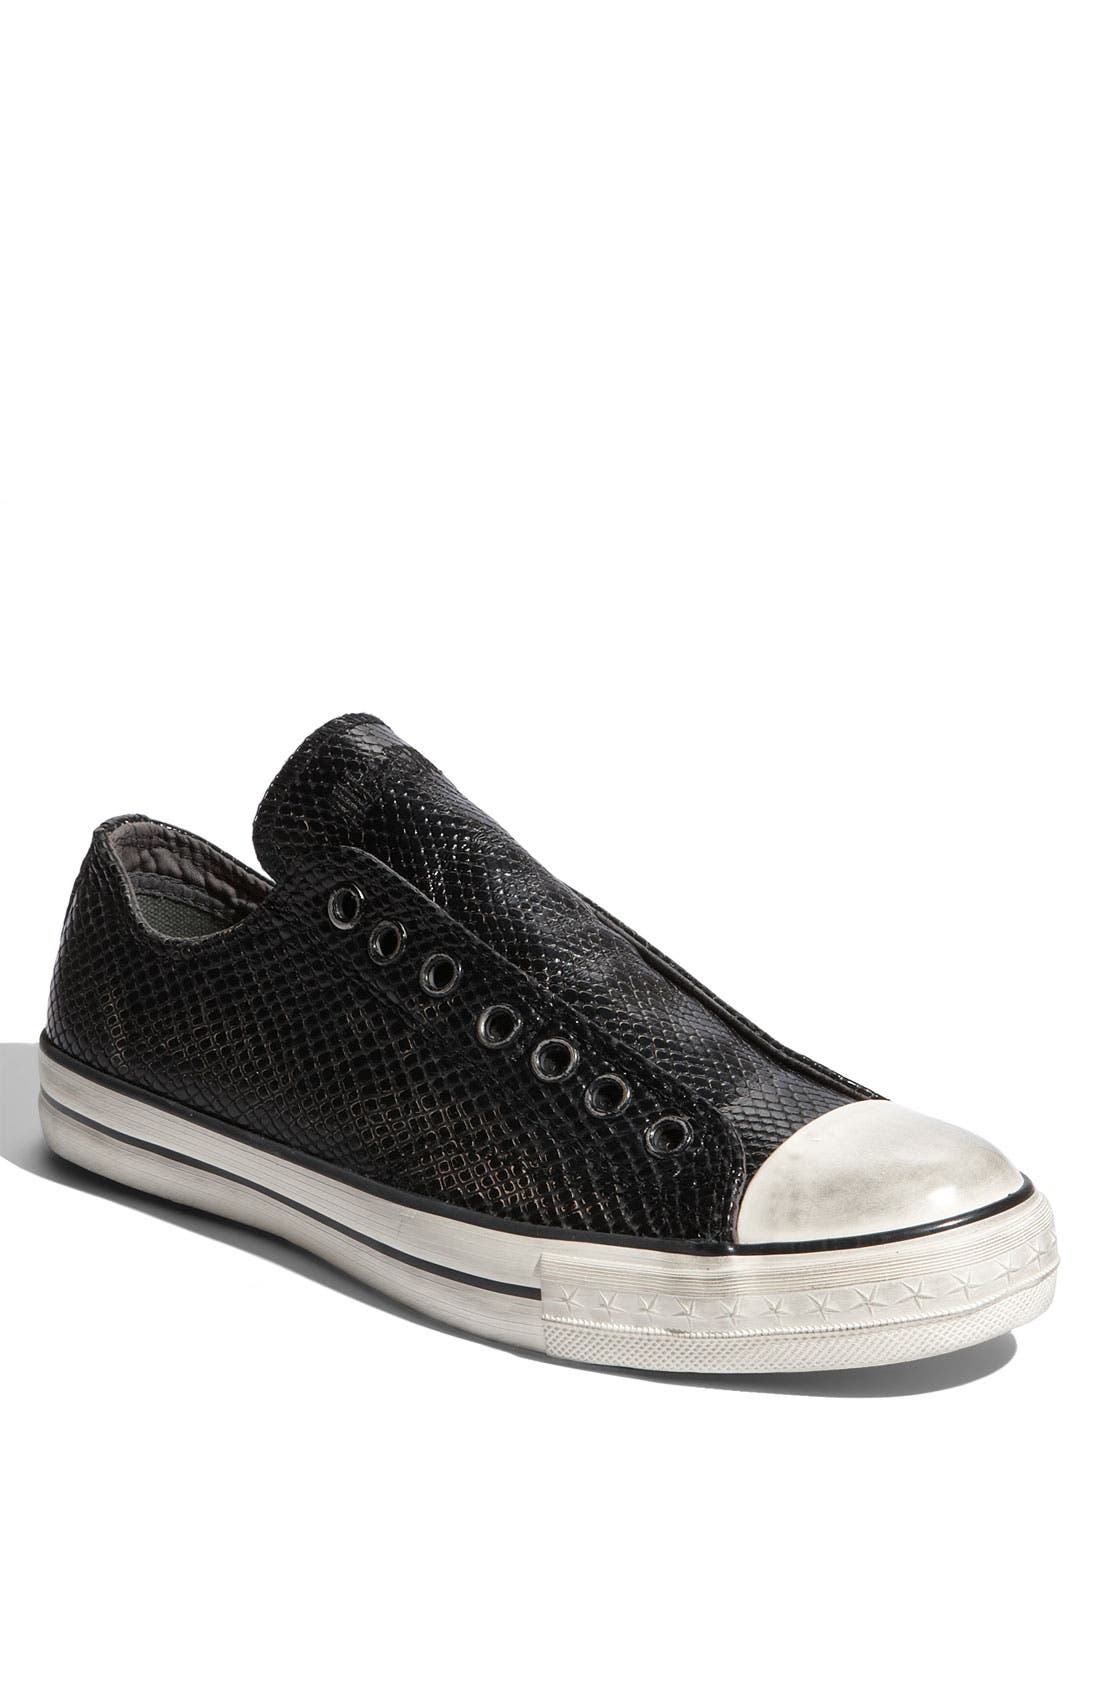 Alternate Image 1 Selected - Converse Chuck Taylor® Textured Leather Slip-On